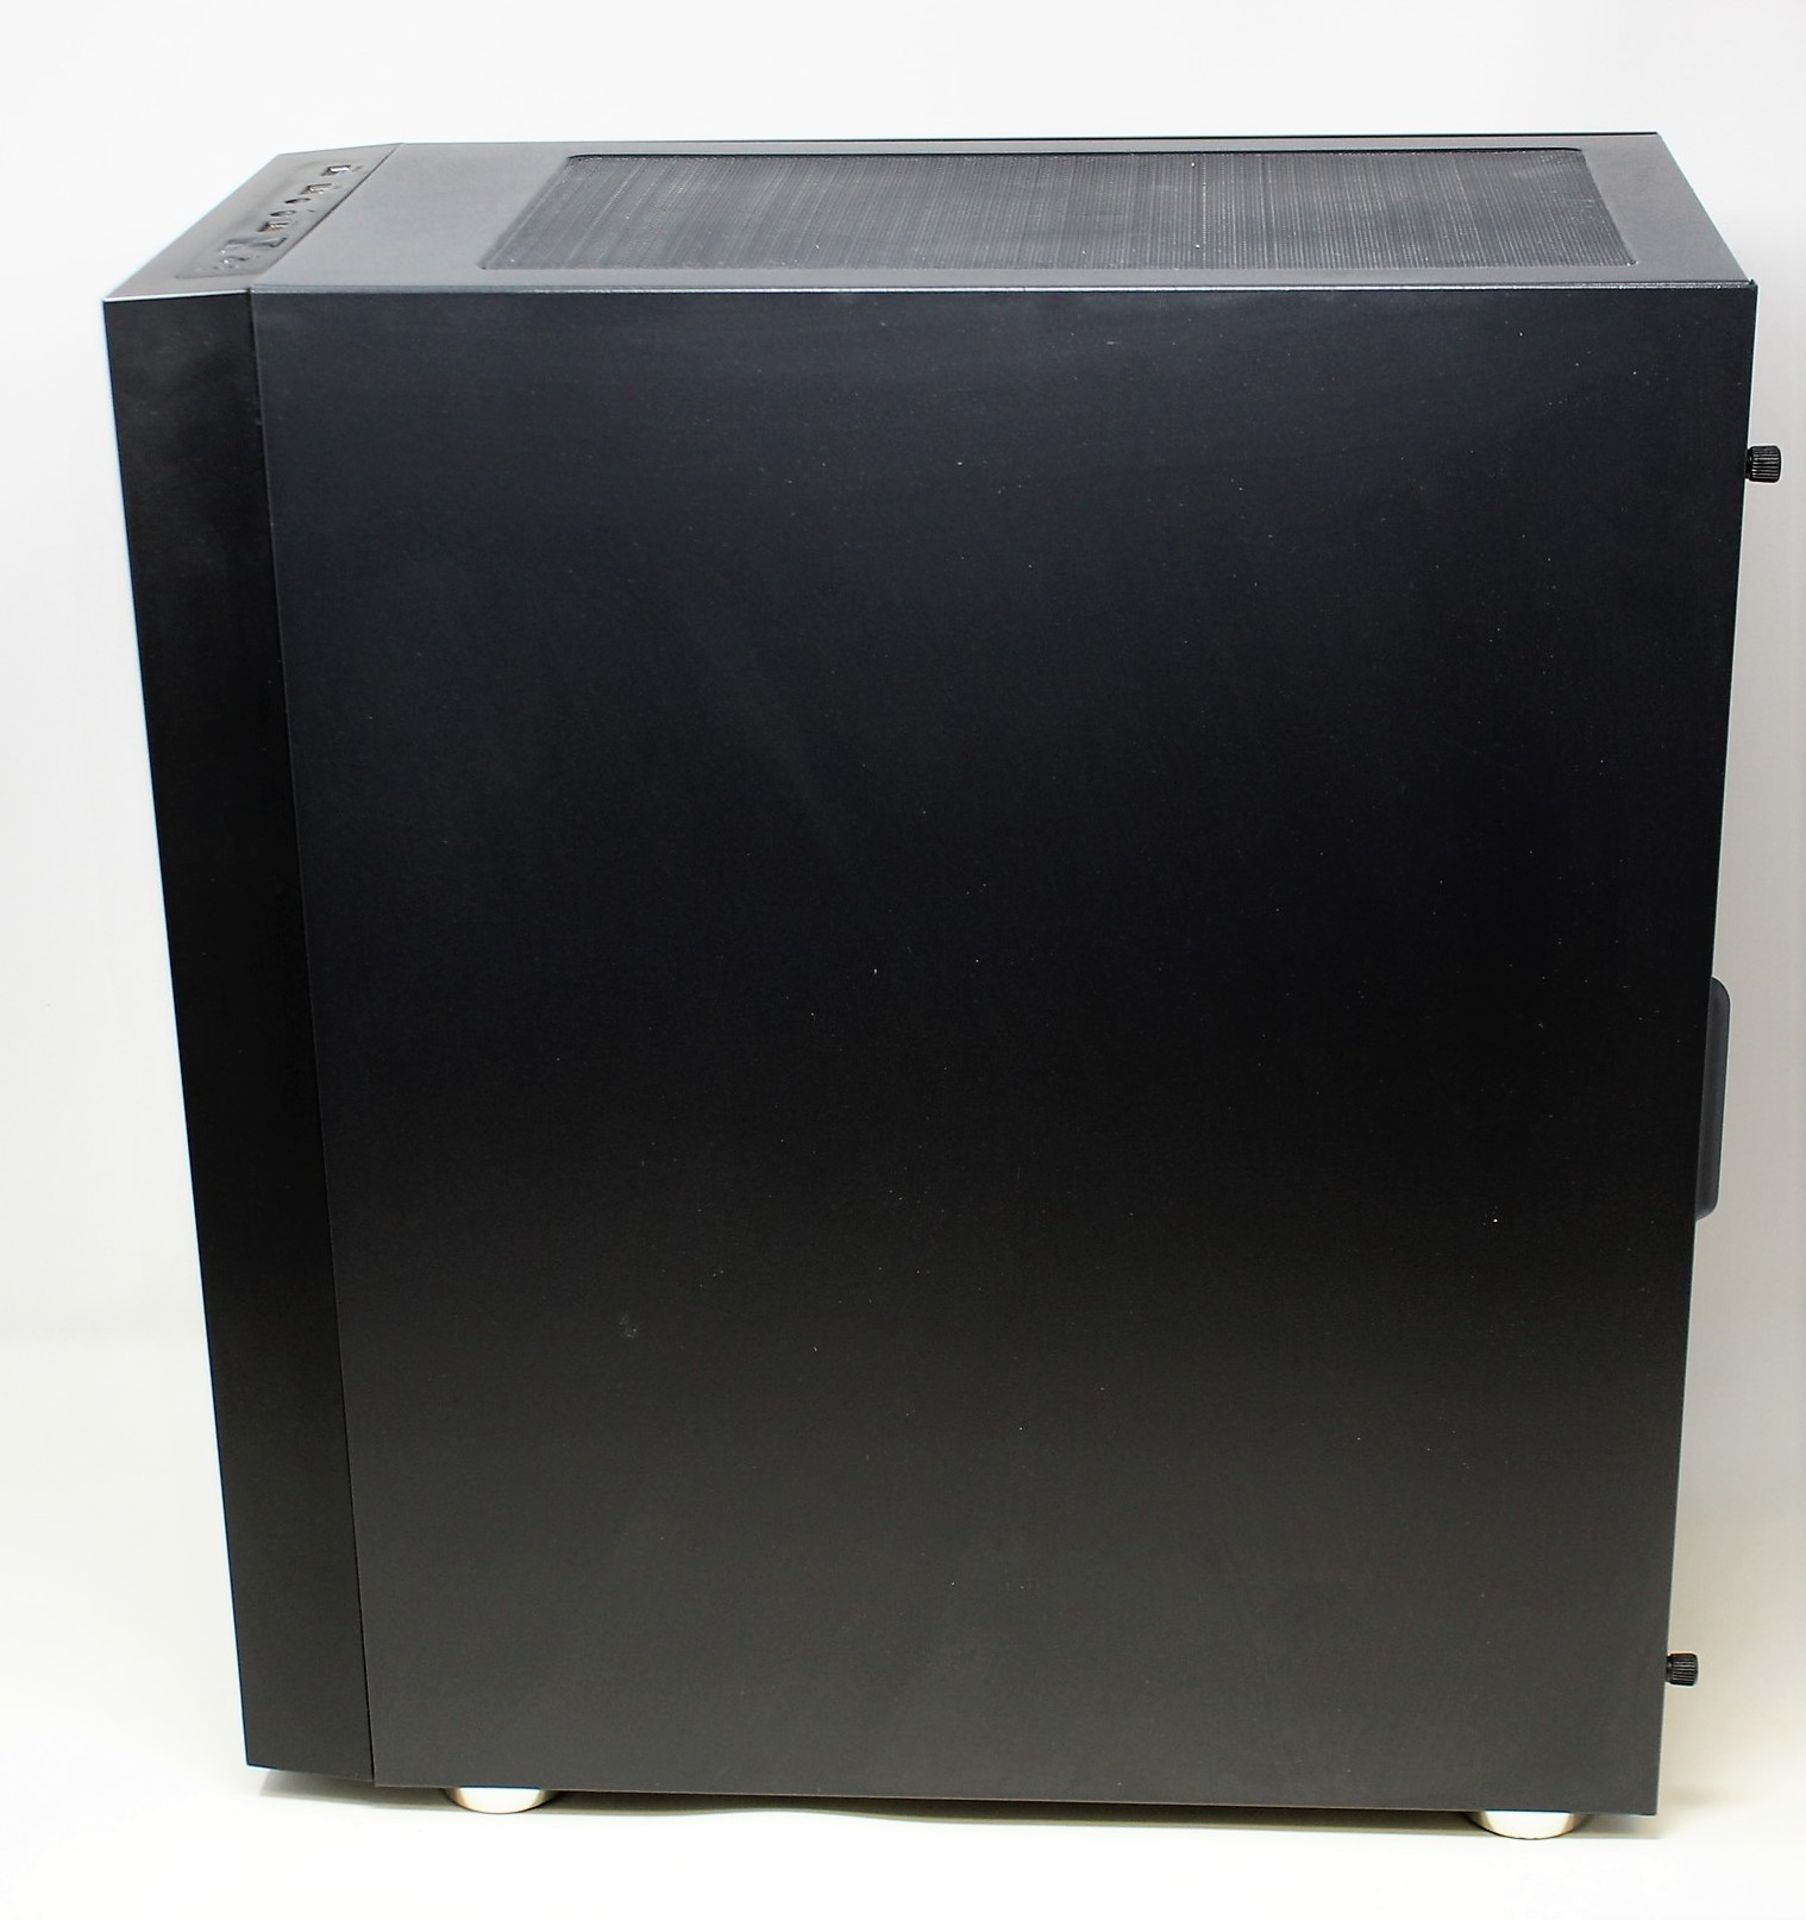 A pre-owned Cube Falcon RGB Custom Gaming PC in an AreoCool Quartz RGB Housing with Intel Core i5- - Image 10 of 15